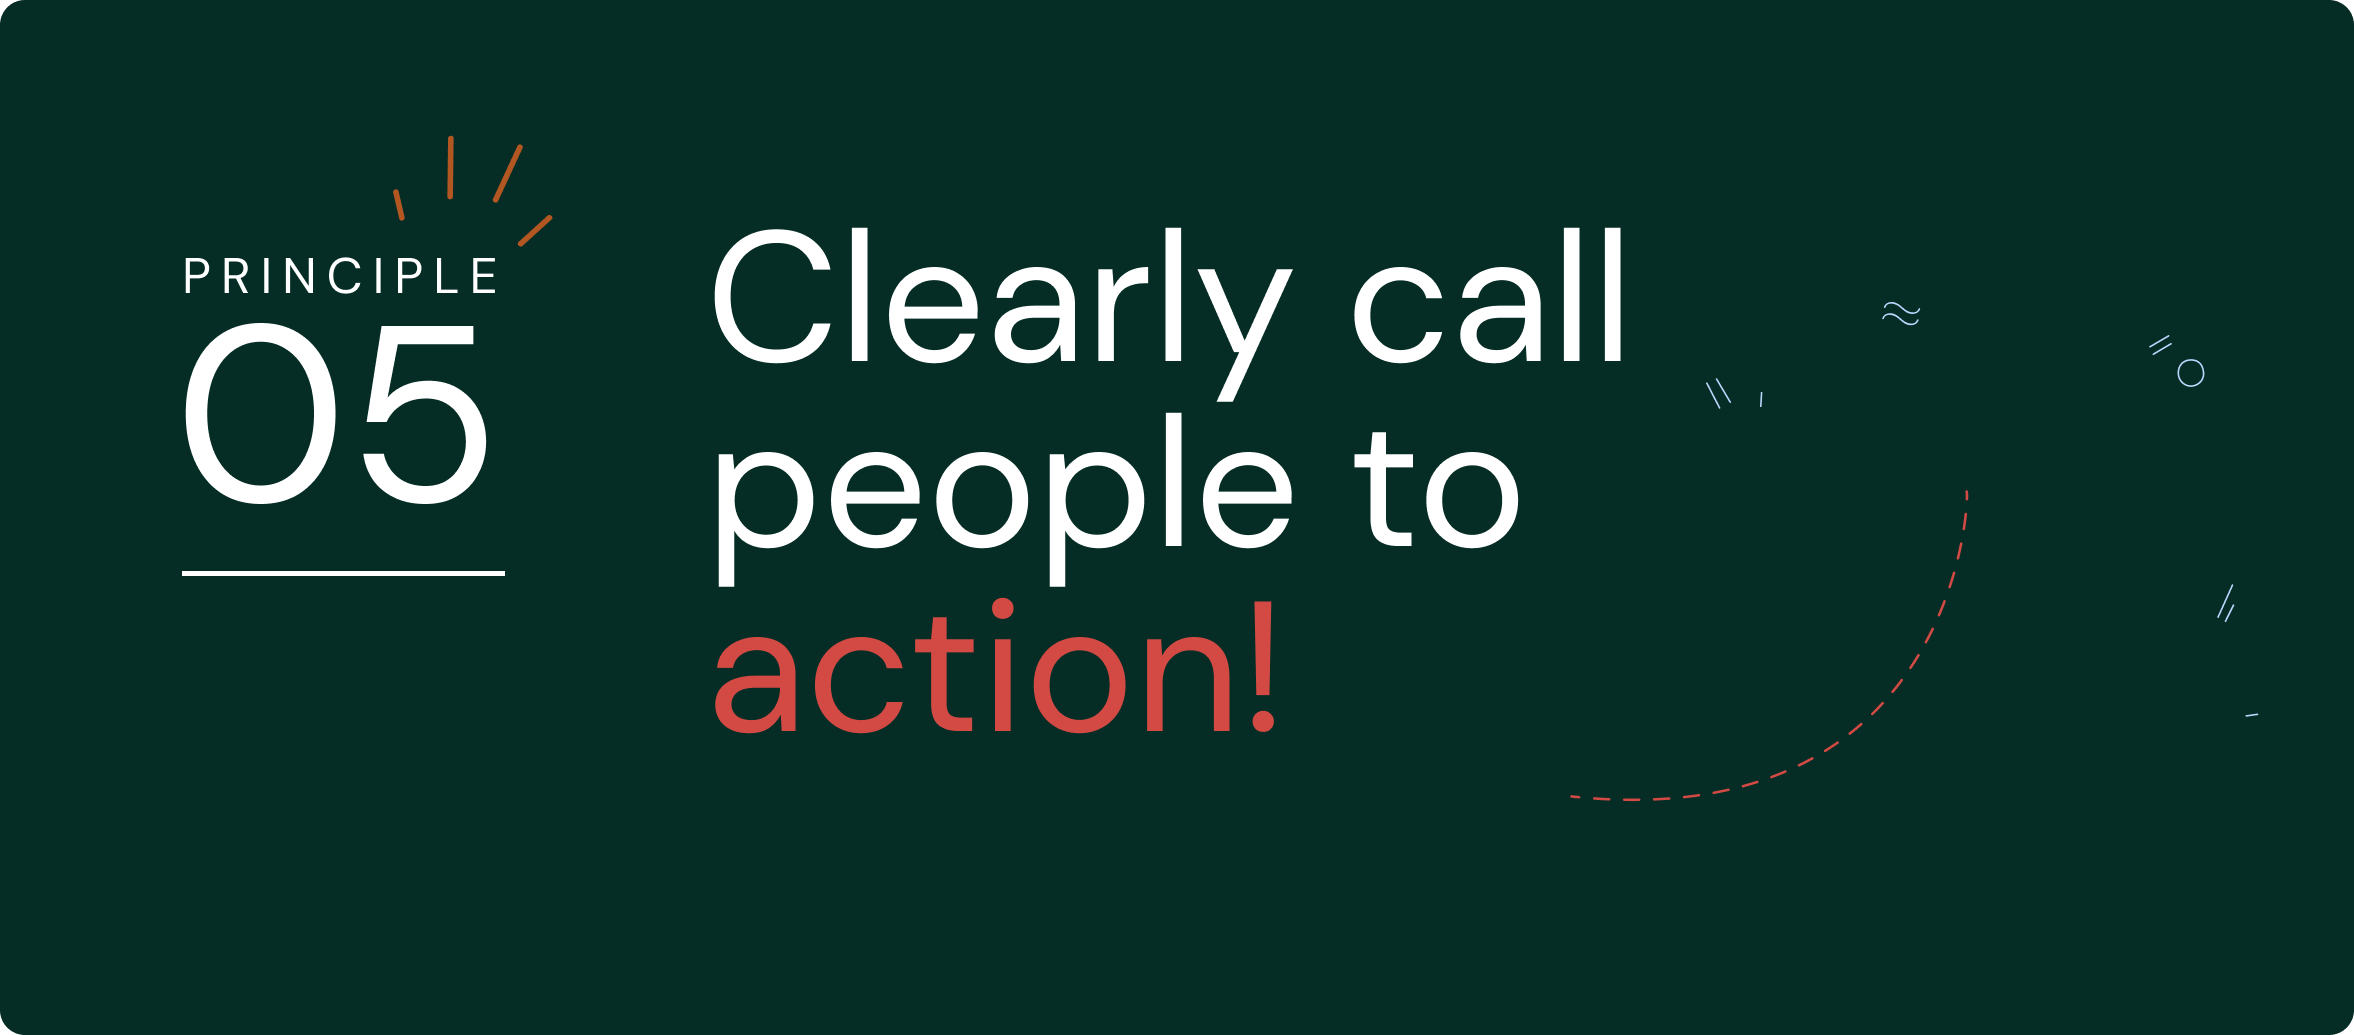 Clearly call people to action